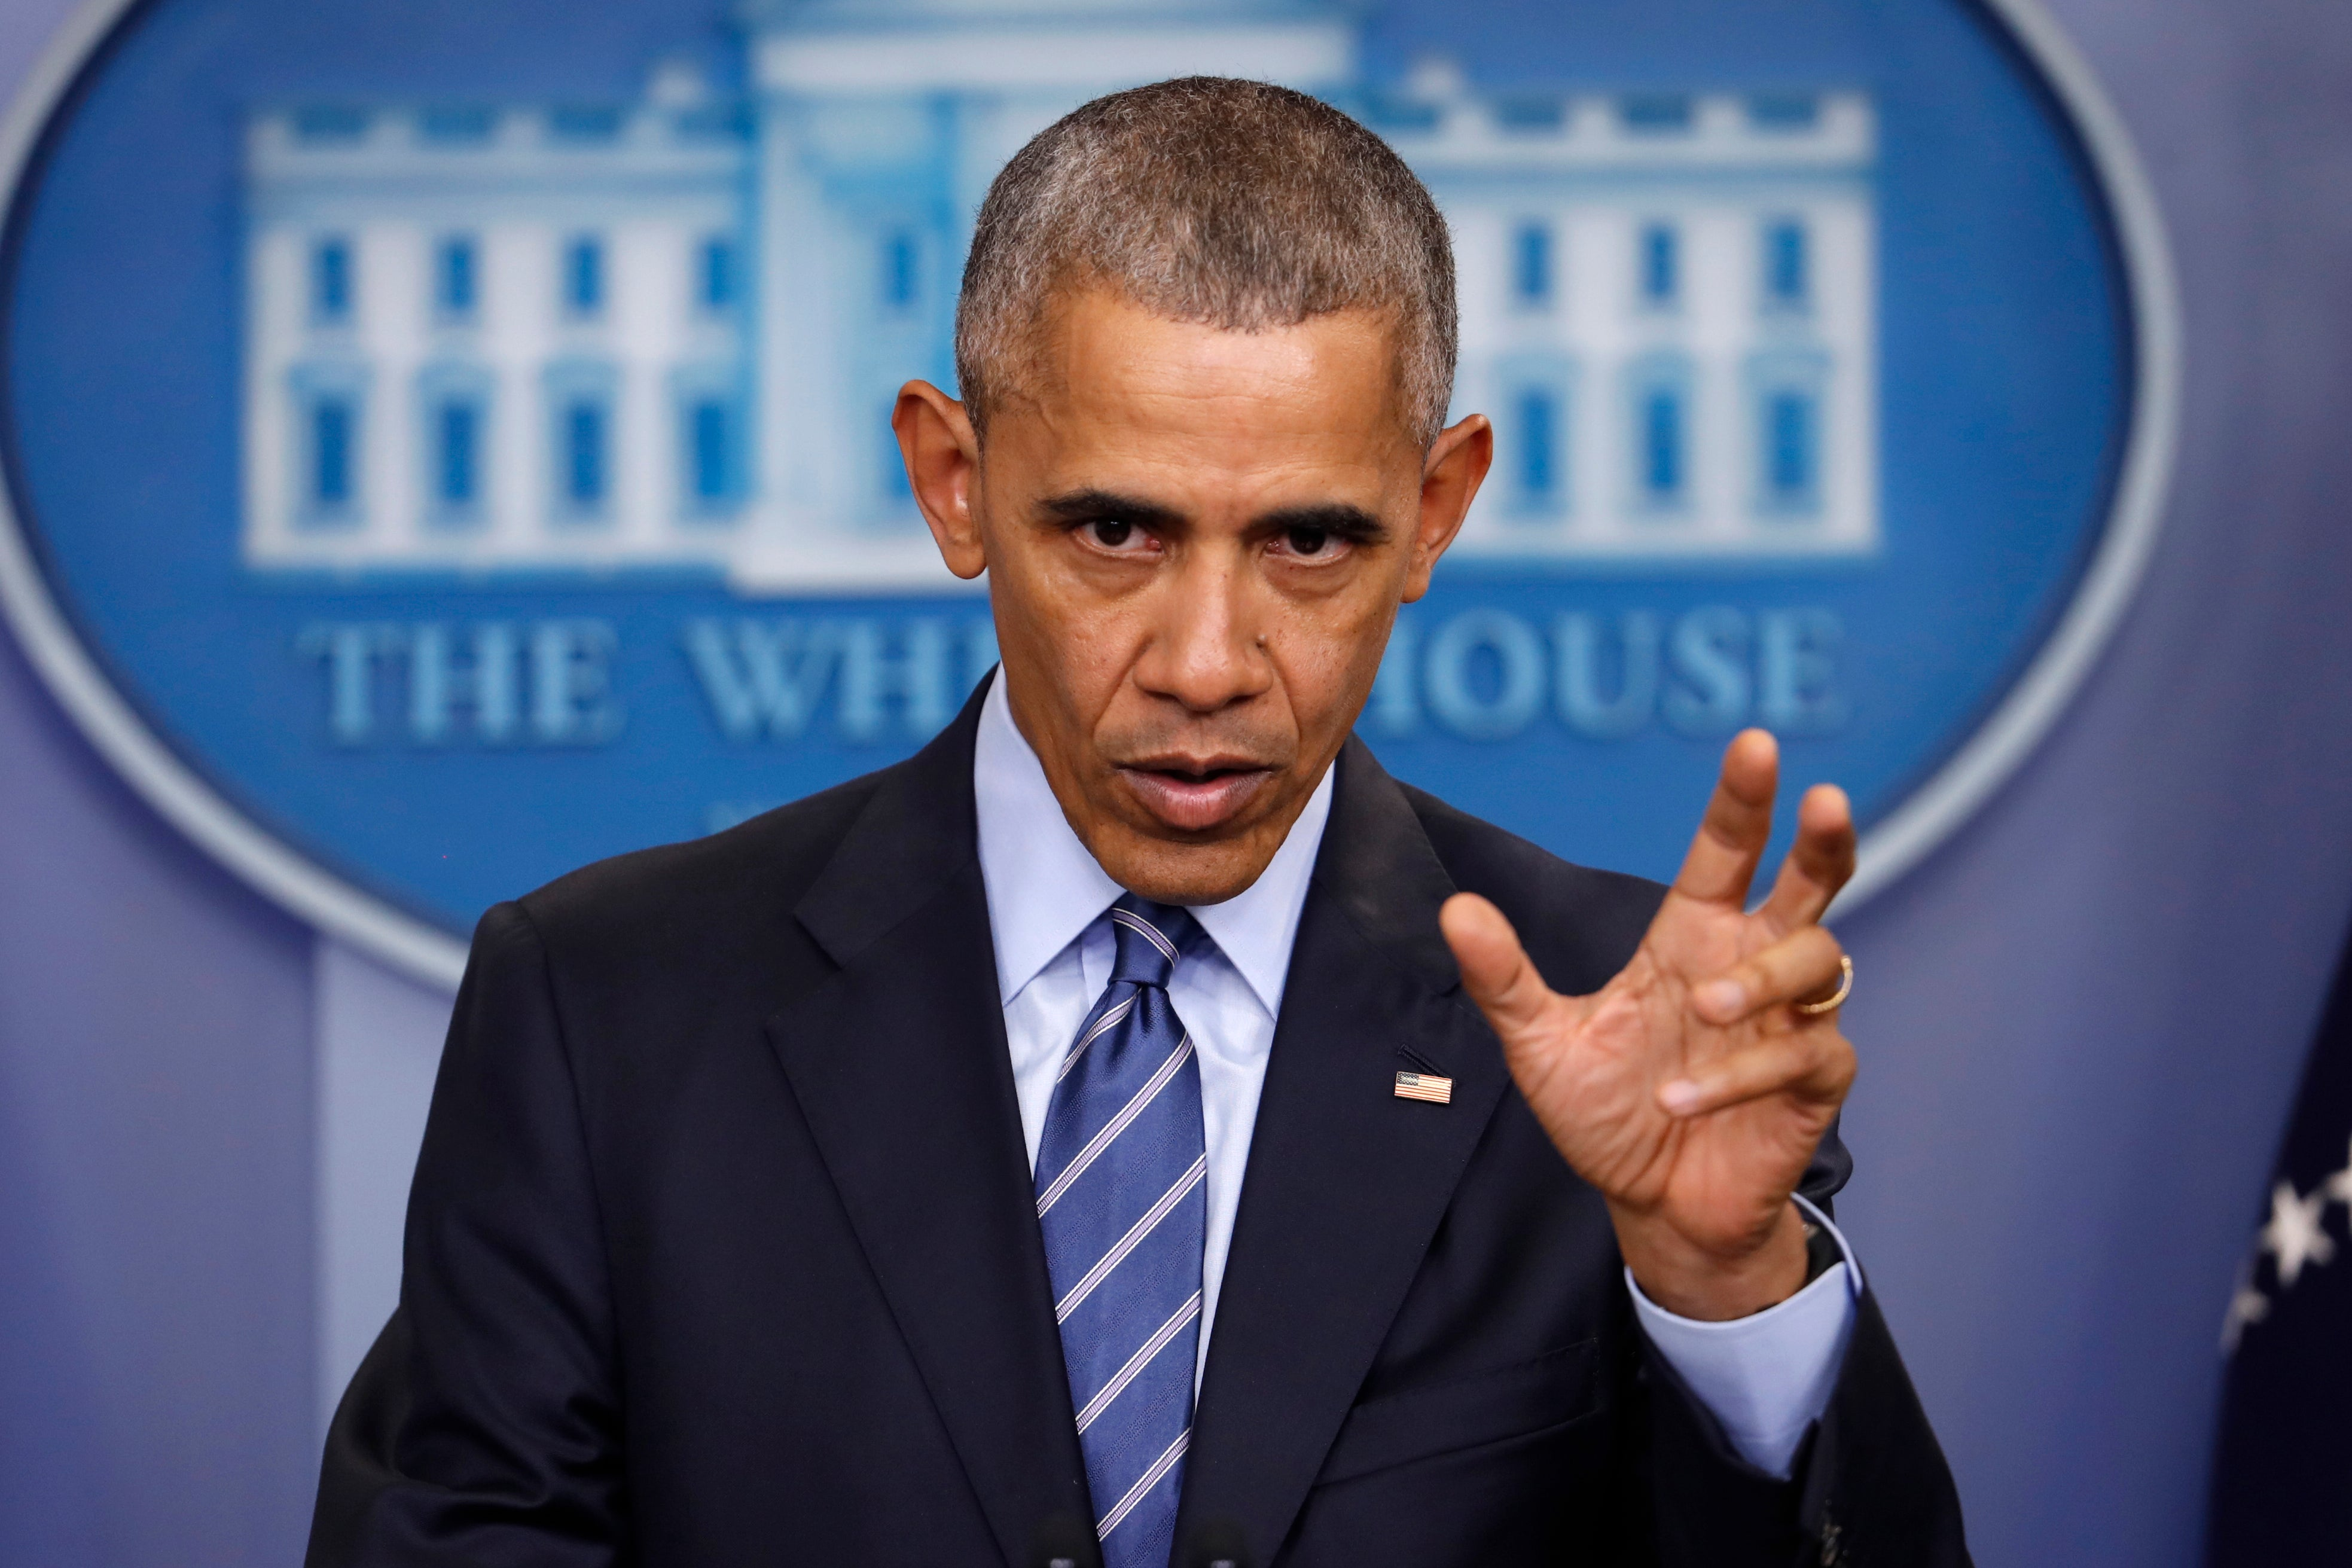 President Obama Fails To Announce US Election Do-Over